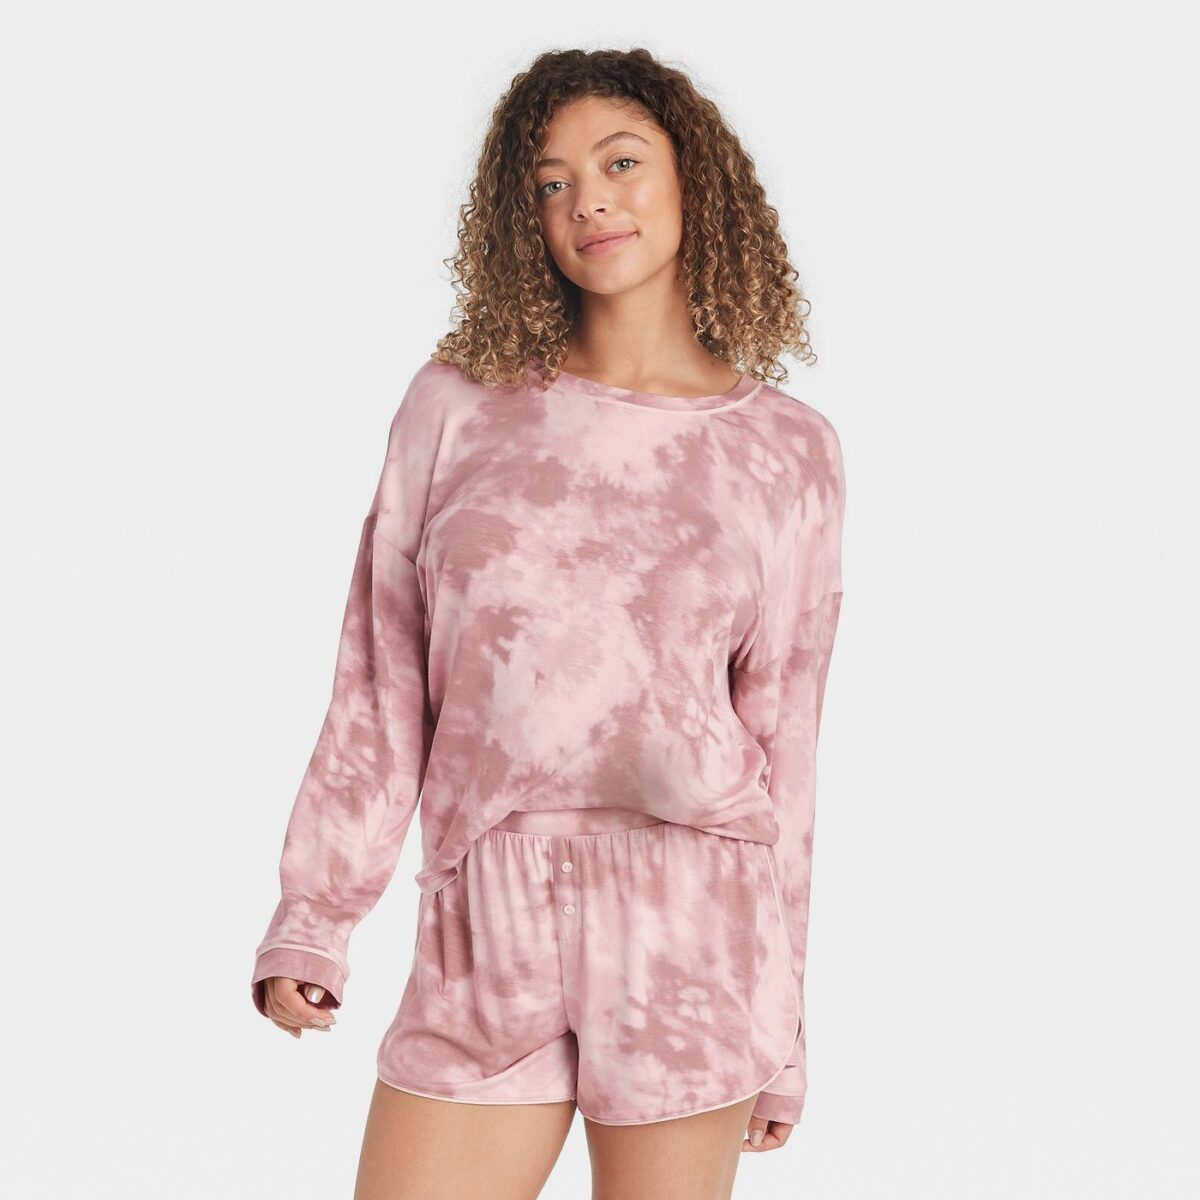 Women's Tie-Dye Beautifully Soft Long Sleeve Top and Shorts Pajama Set - Stars Above™ Pink